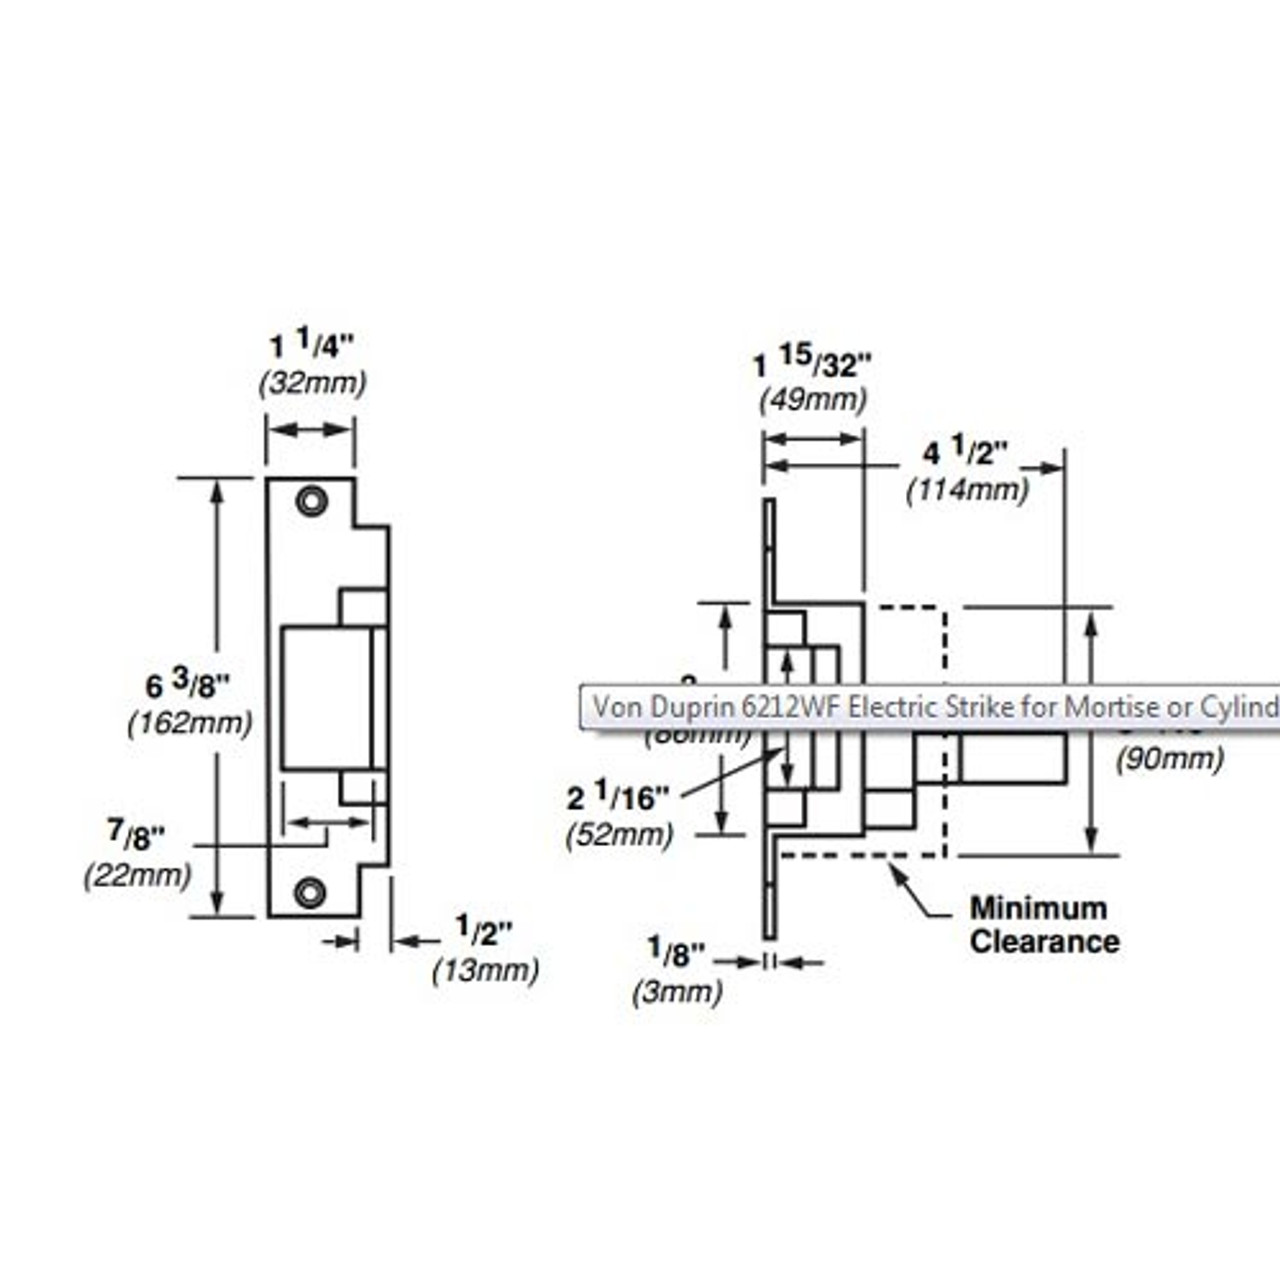 6212WF-24VDC-US32 Von Duprin Electric Strike for Mortise or Cylindrical Locksets in Bright Stainless Steel Finish